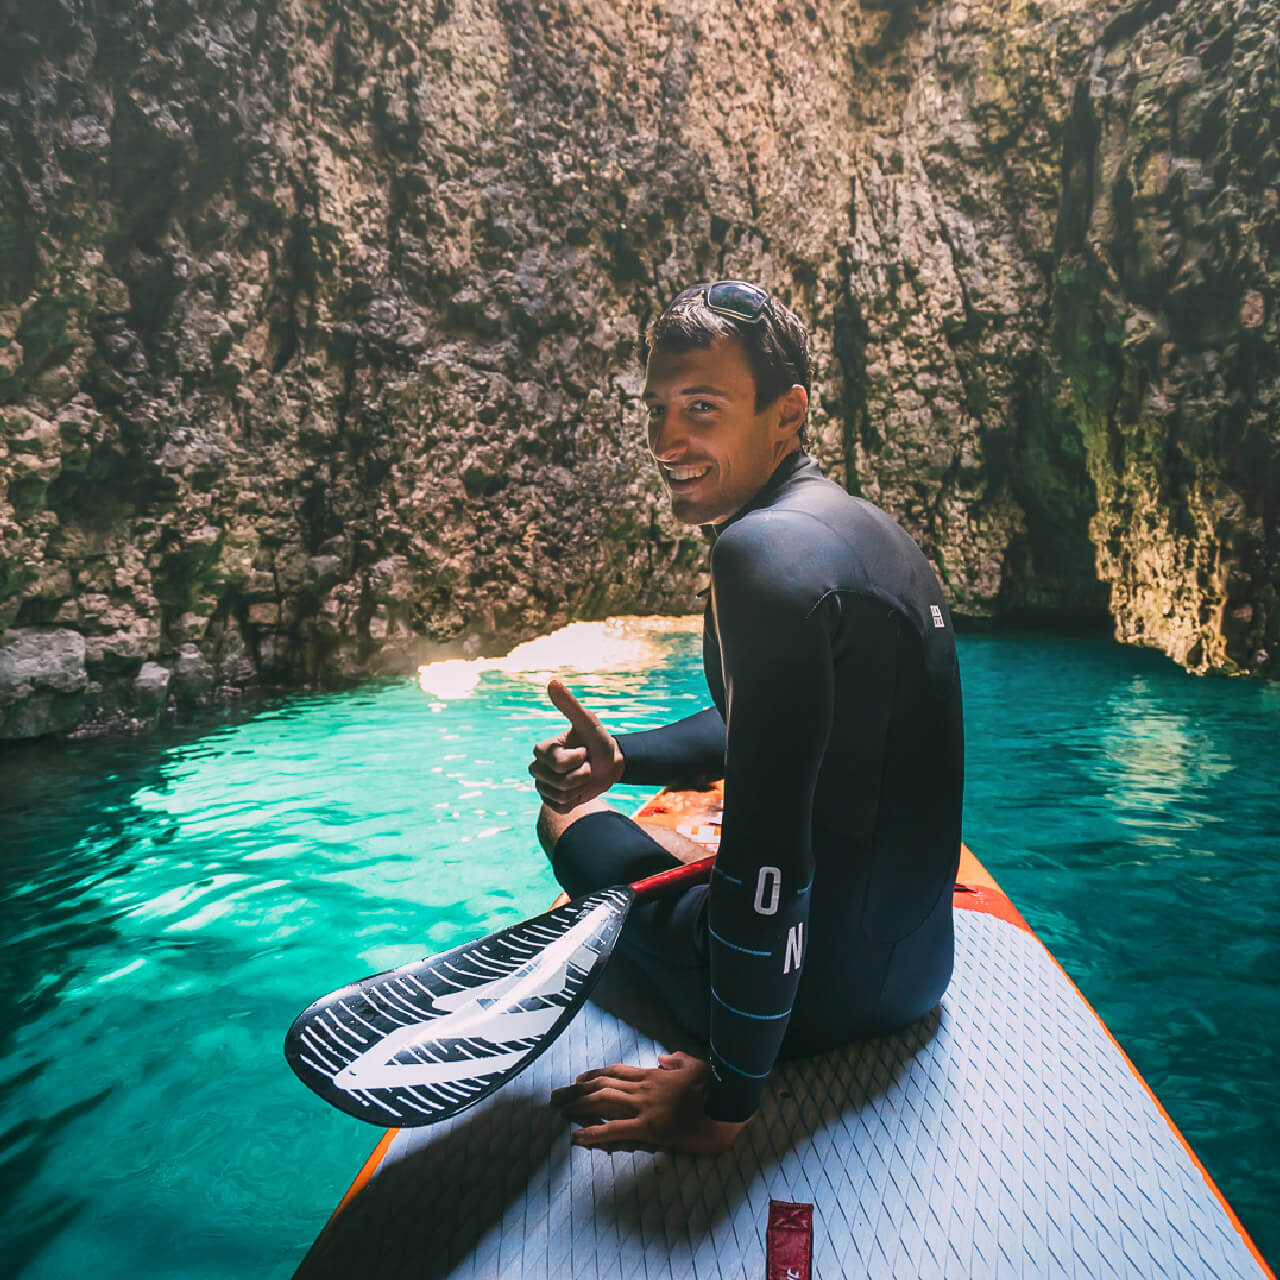 Jistra Adventures - Sup Tours